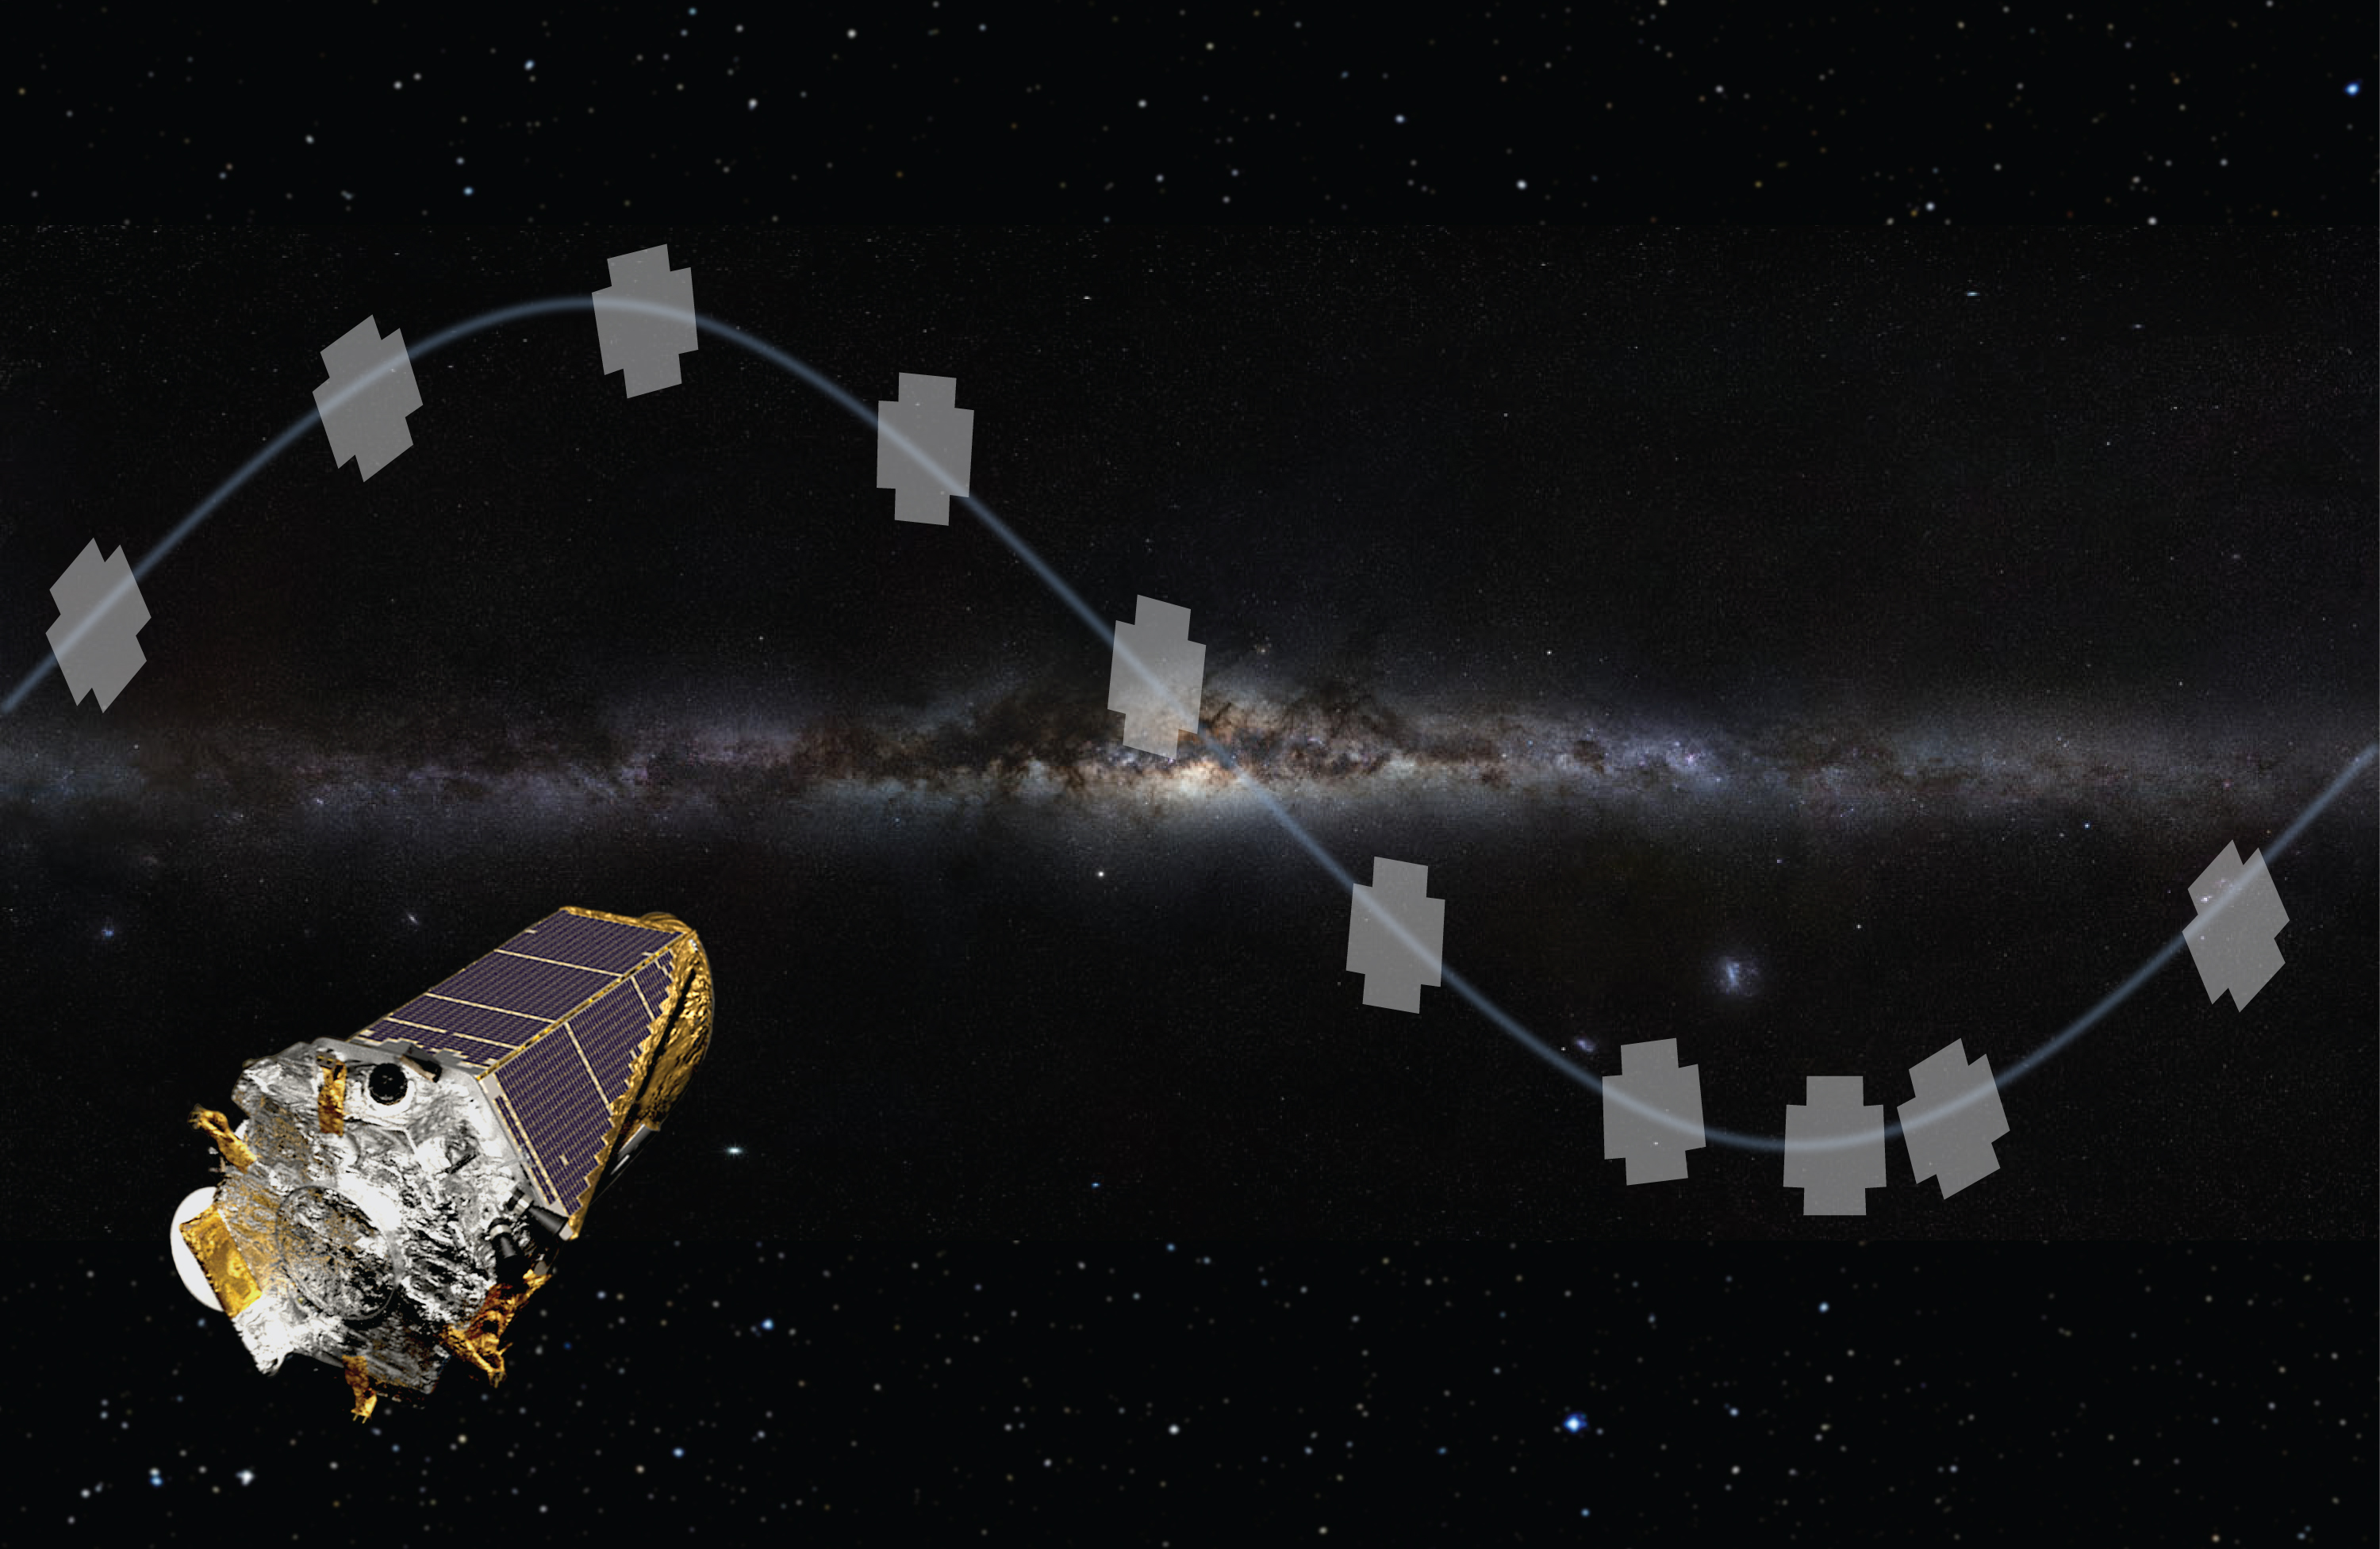 NASA's Exoplanet-Hunting Kepler Space Telescope Gets New Mission